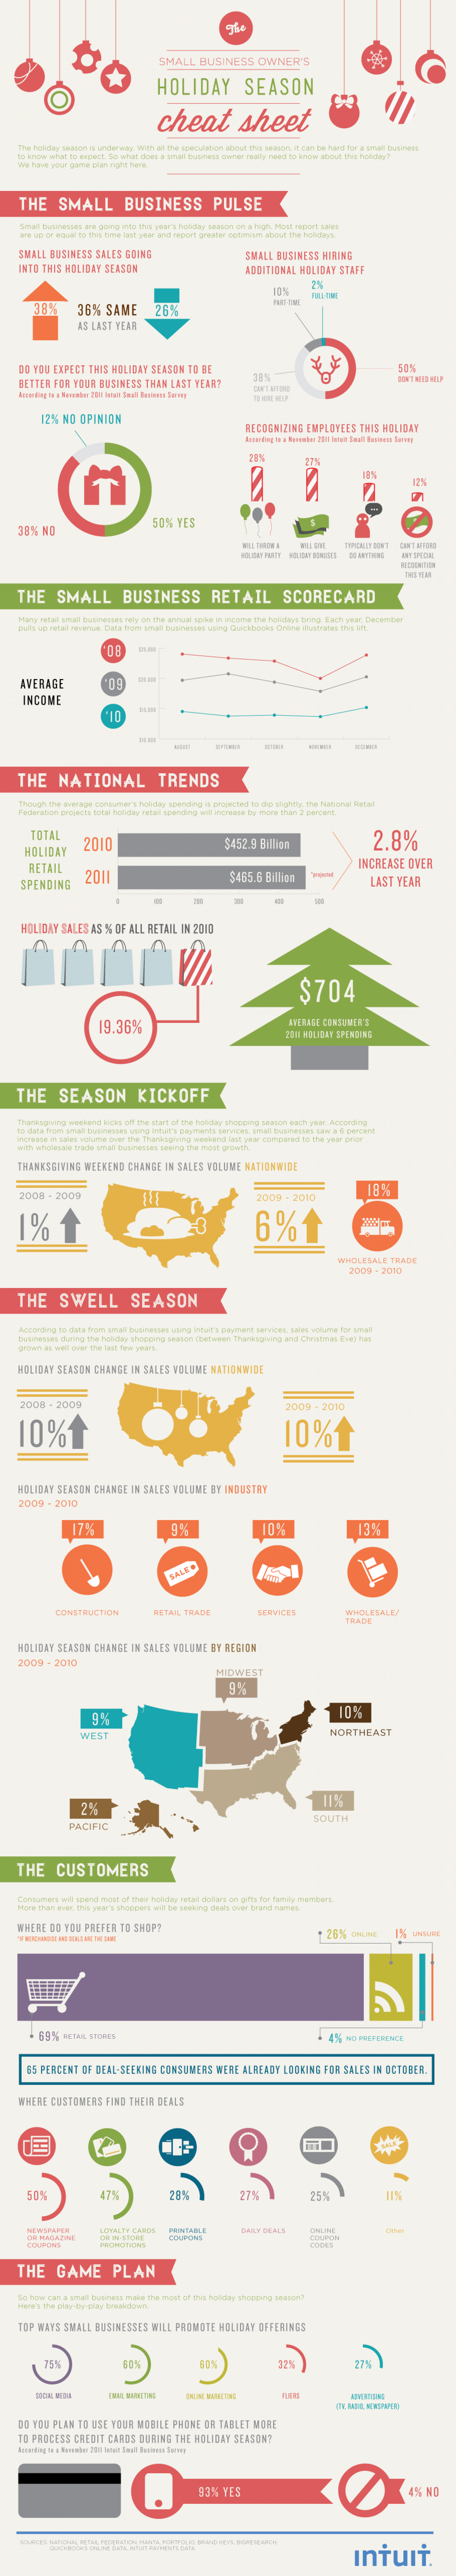 The Holidays Kick Into High Gear Infographic